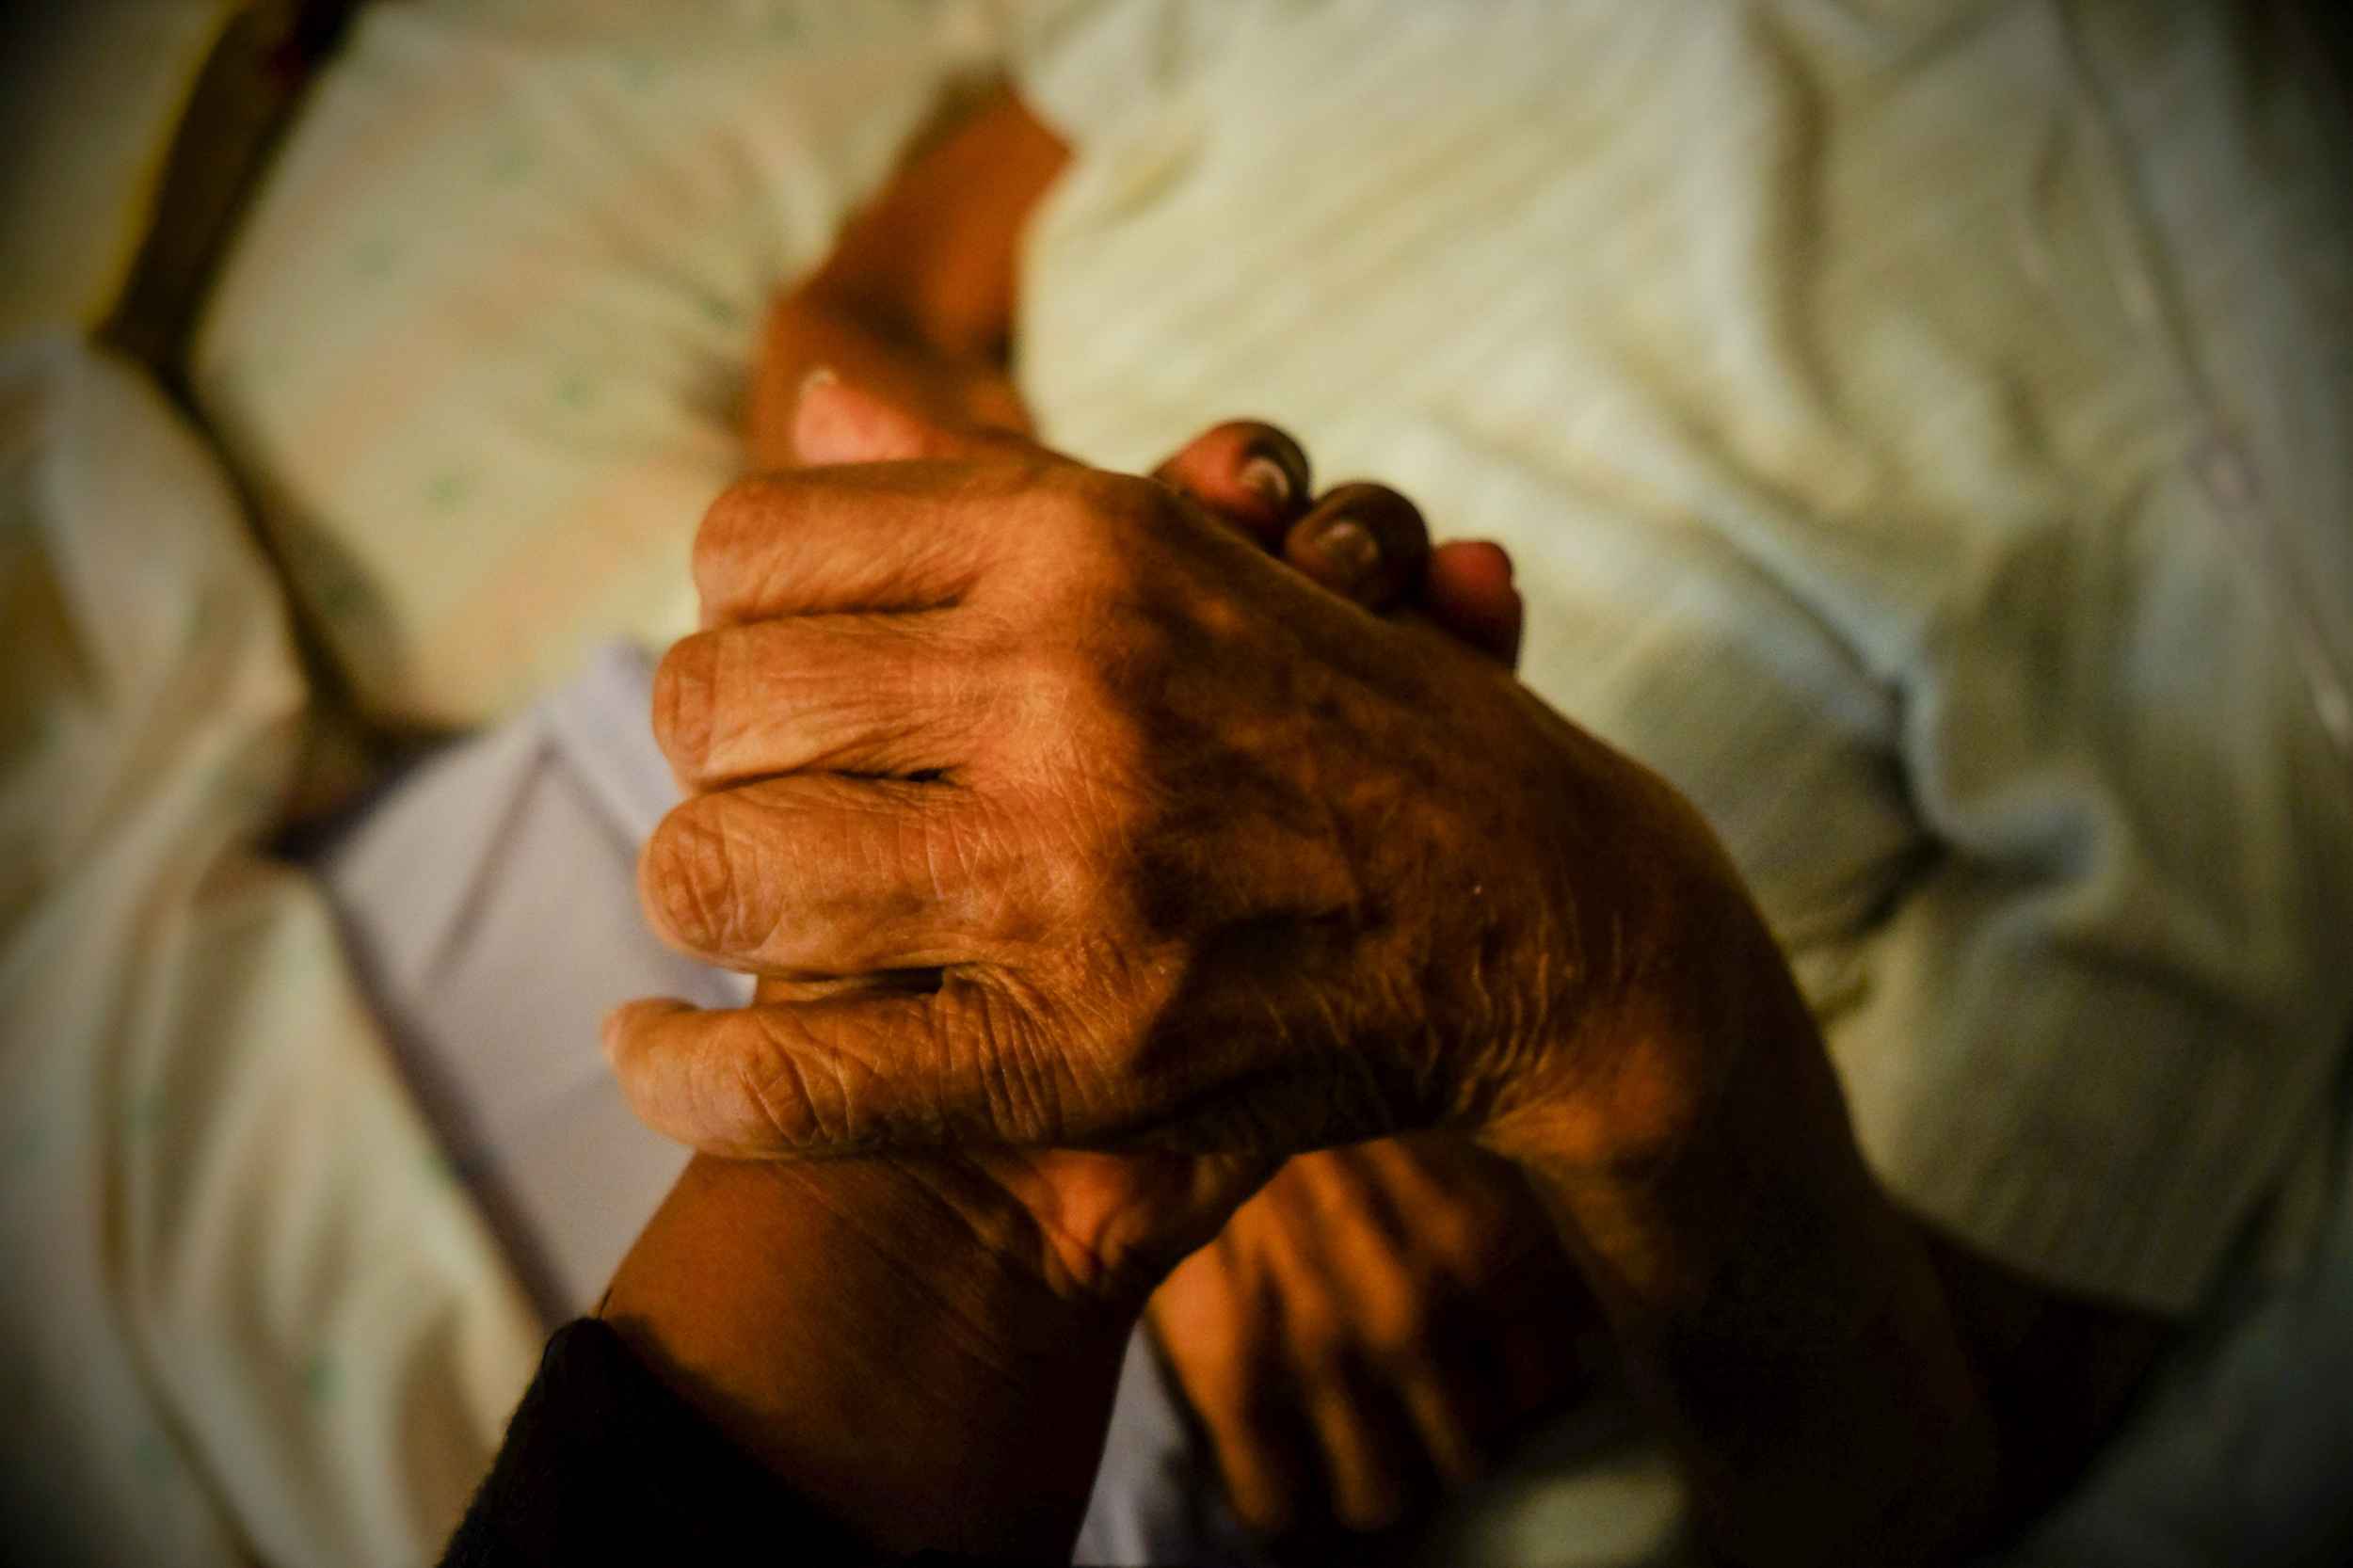 Grandma was in excruciating pain and could barely breathe, but asked to hold my hand and for me to pray over her. This was the second night of my arrival. My grandma passed away a week later, Dalark, Arkansas.